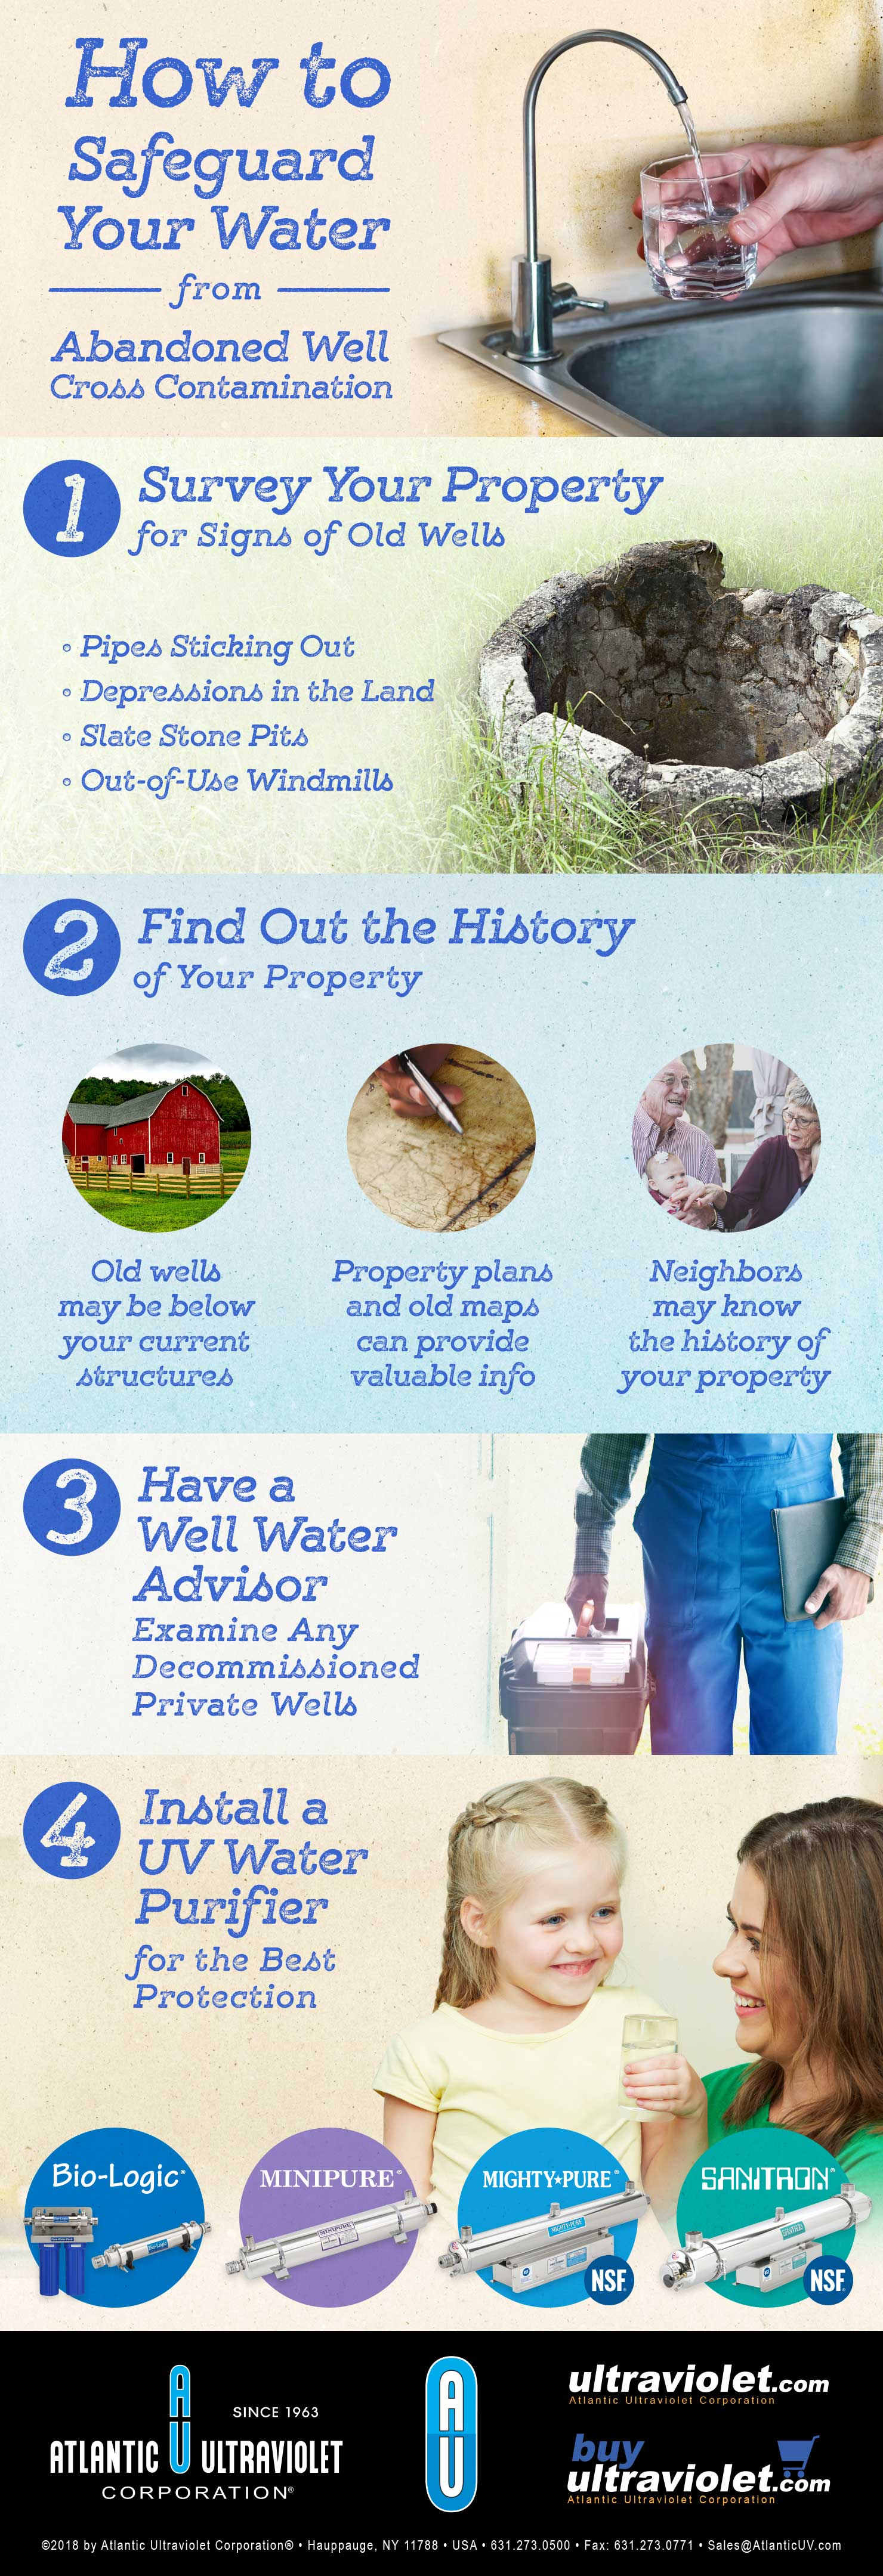 How to Safeguard Your Water from Abandoned Well Cross-Contamination - Infographic